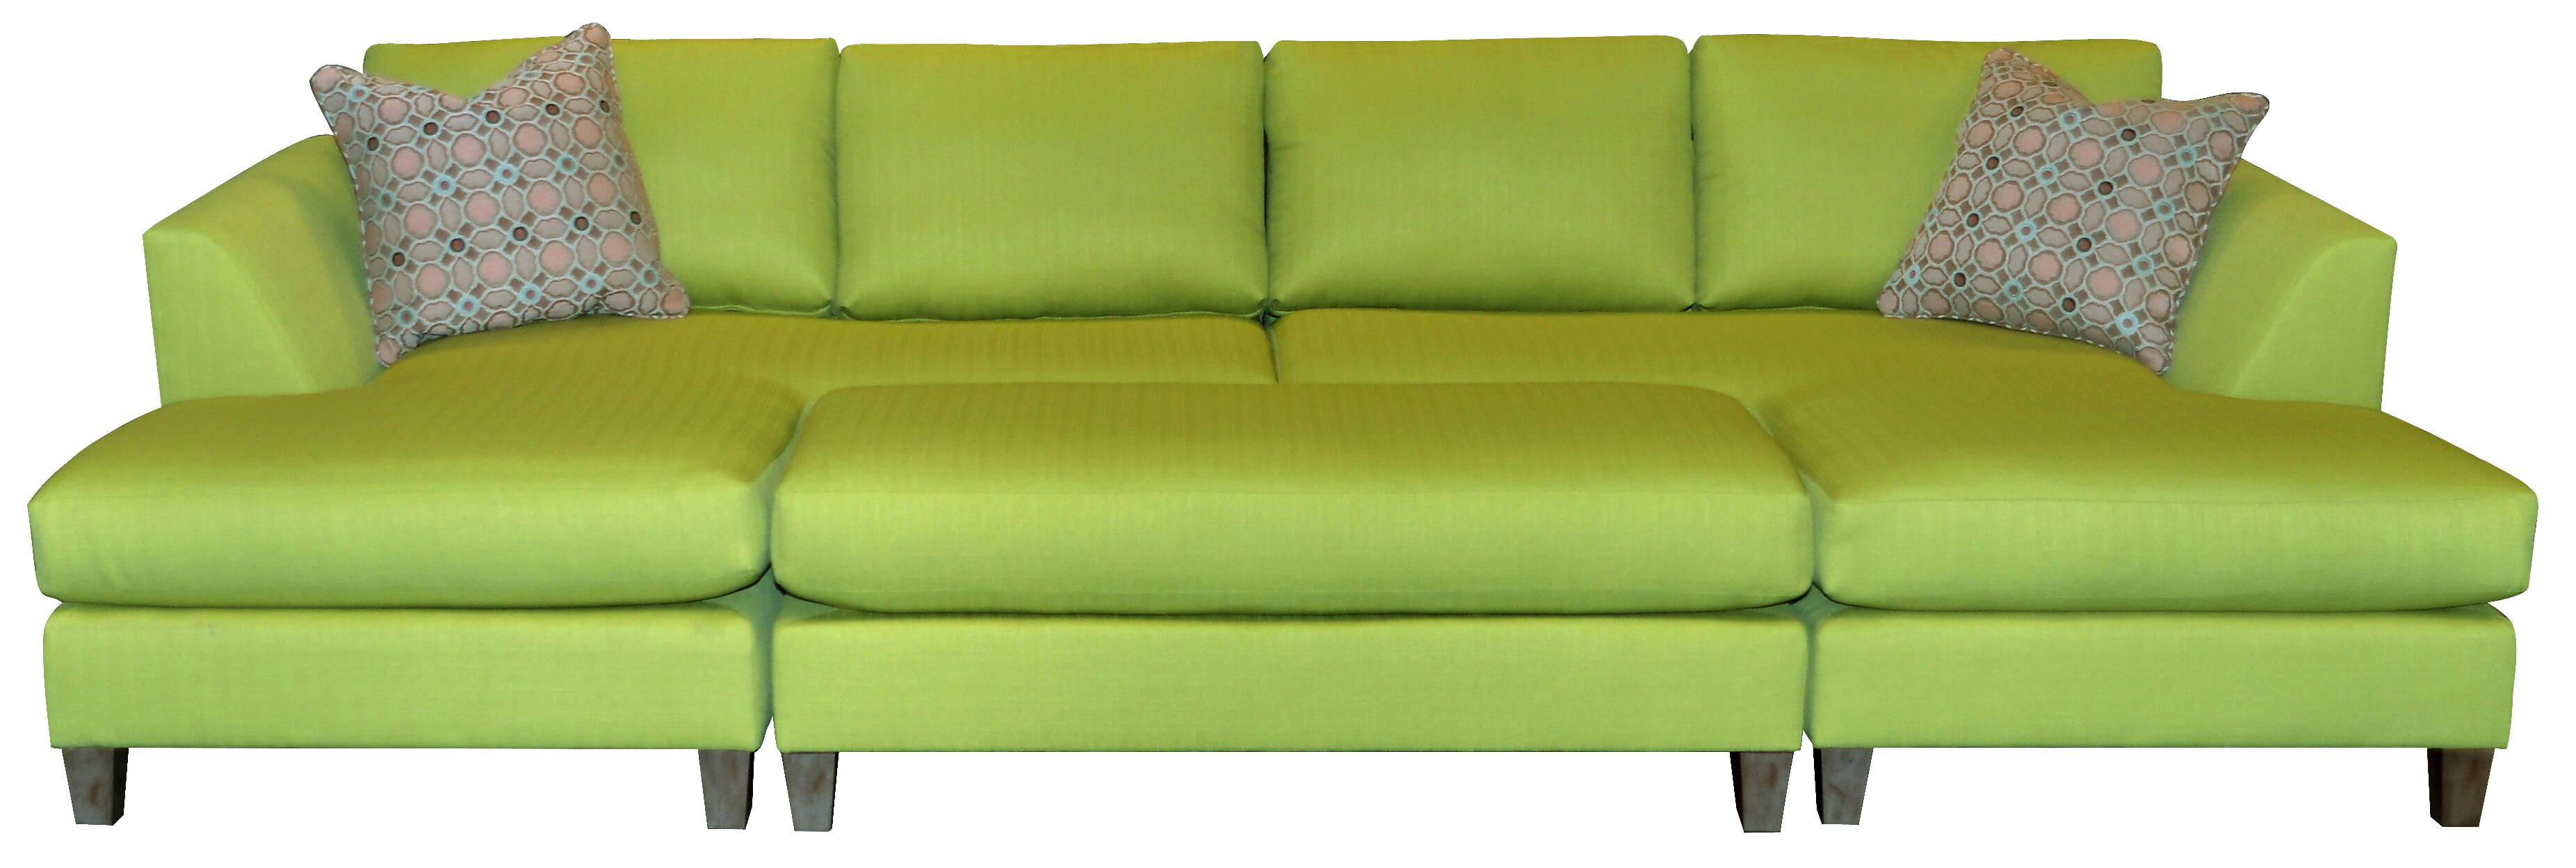 Tribeca 3-piece sectional_Simple Chic